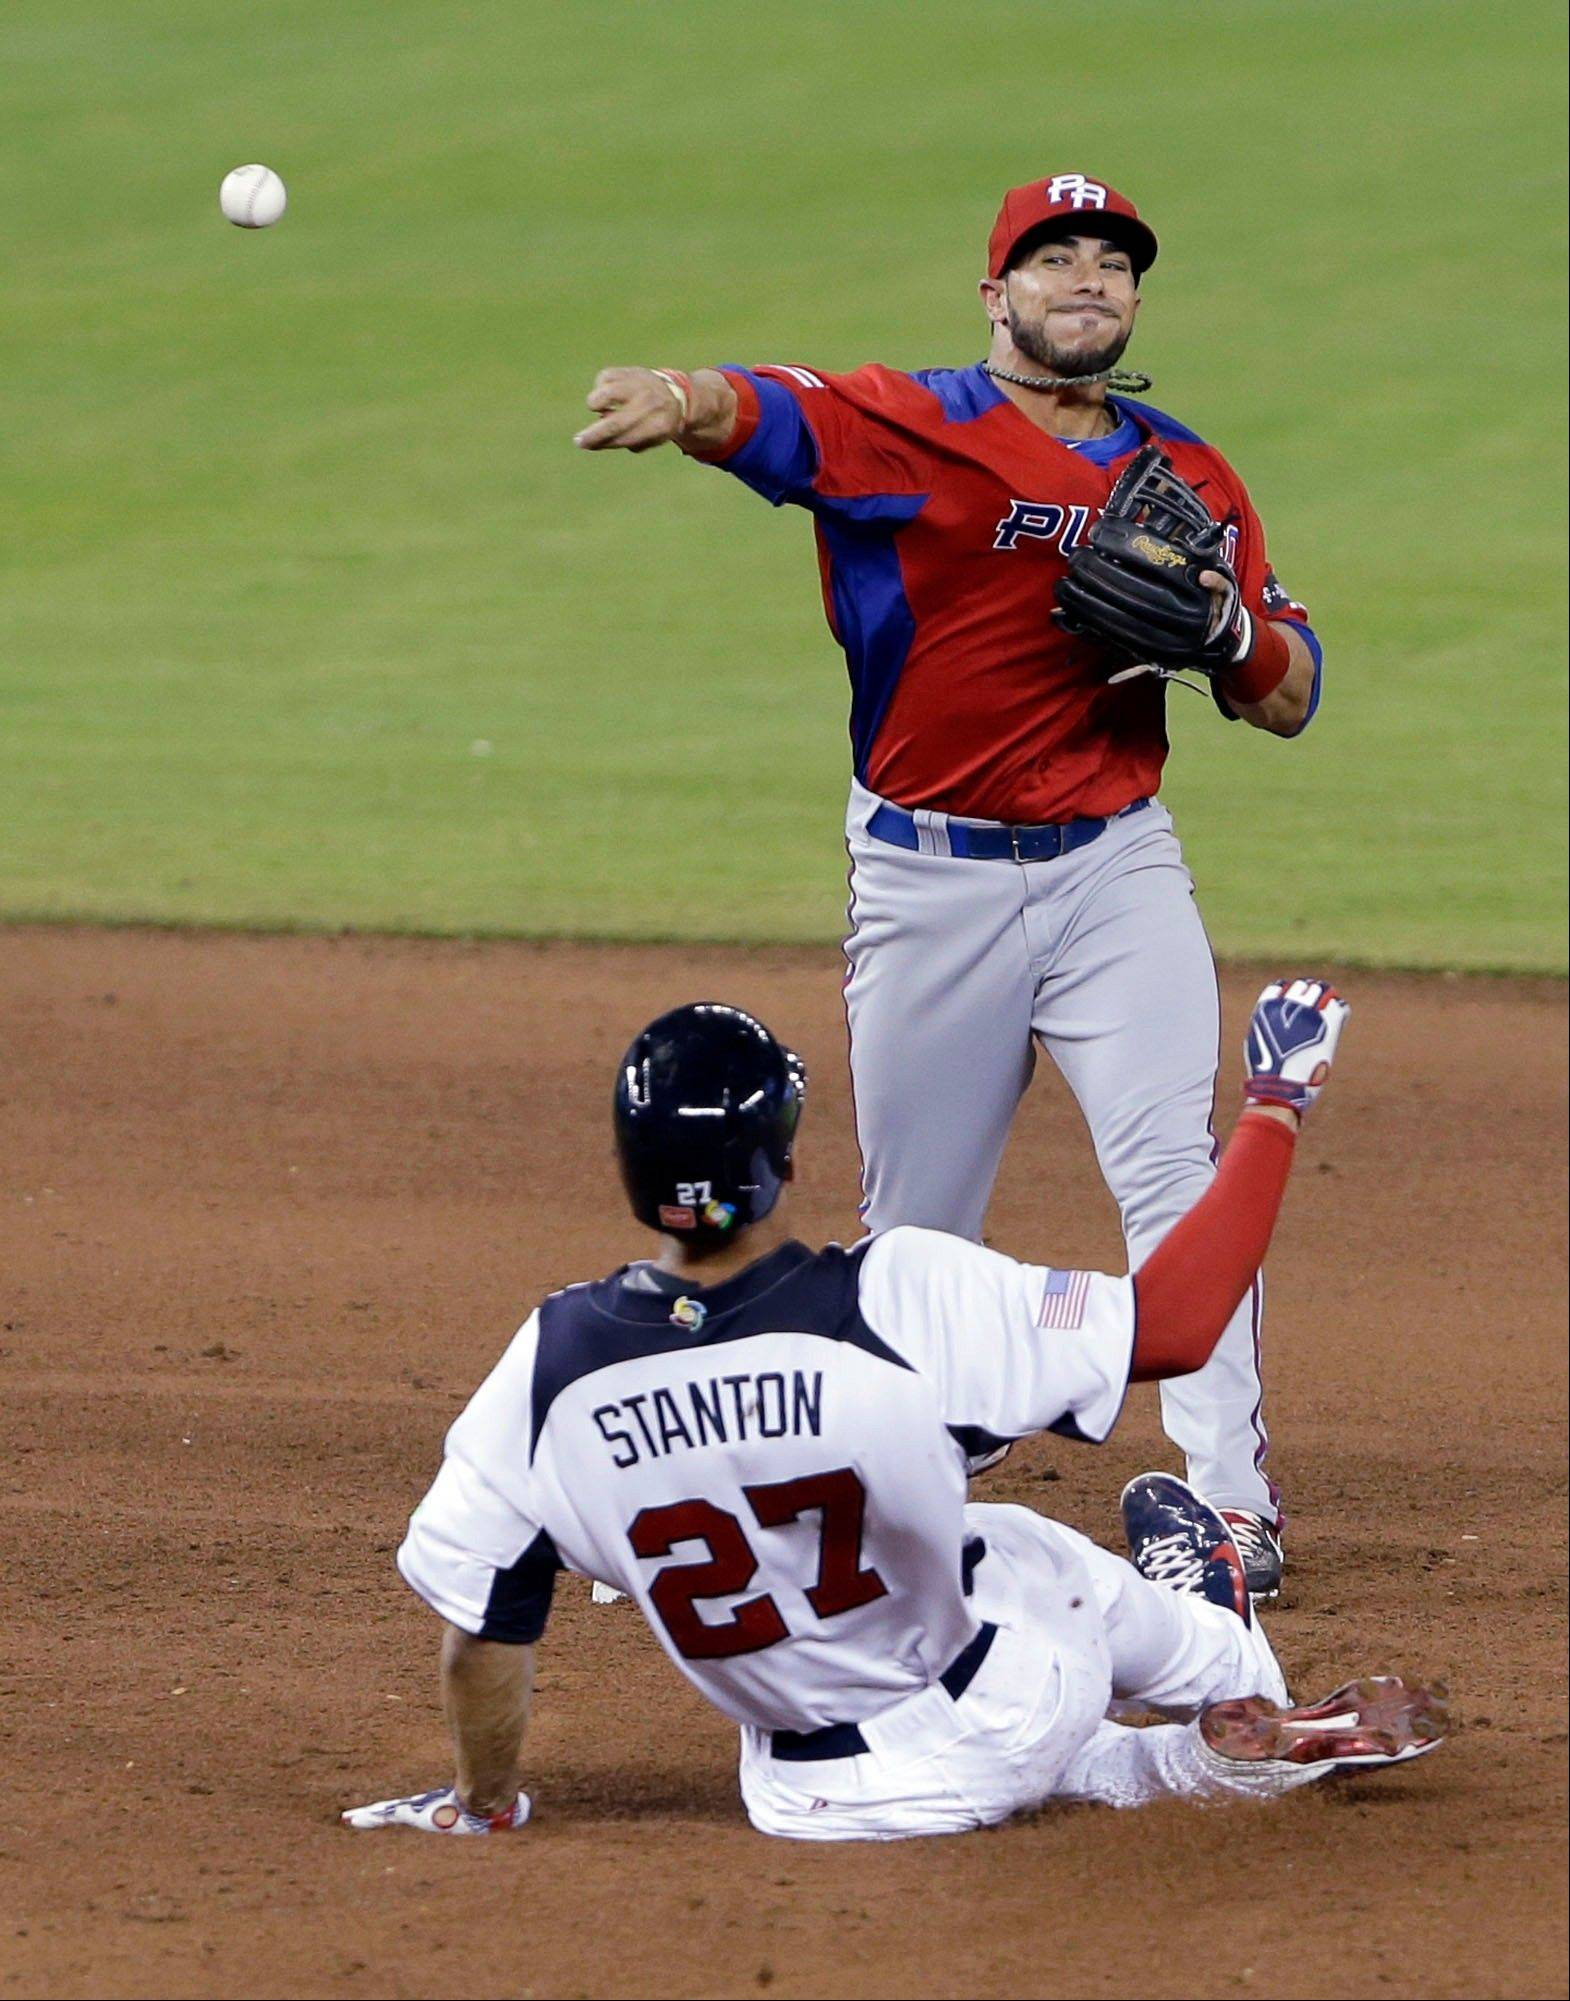 Puerto Rico shortstop Mike Aviles throws to first to attempt a double play as United States' Giancarlo Stanton (27) slides into second during the seventh inning of the second-round elimination game of the World Baseball Classic, Friday, March 15, 2013, in Miami. United States' Ben Zobrist was safe at first and Stanton out at second base and Puerto Rico defeated the U.S. 4-3. (AP Photo/Wilfredo Lee)